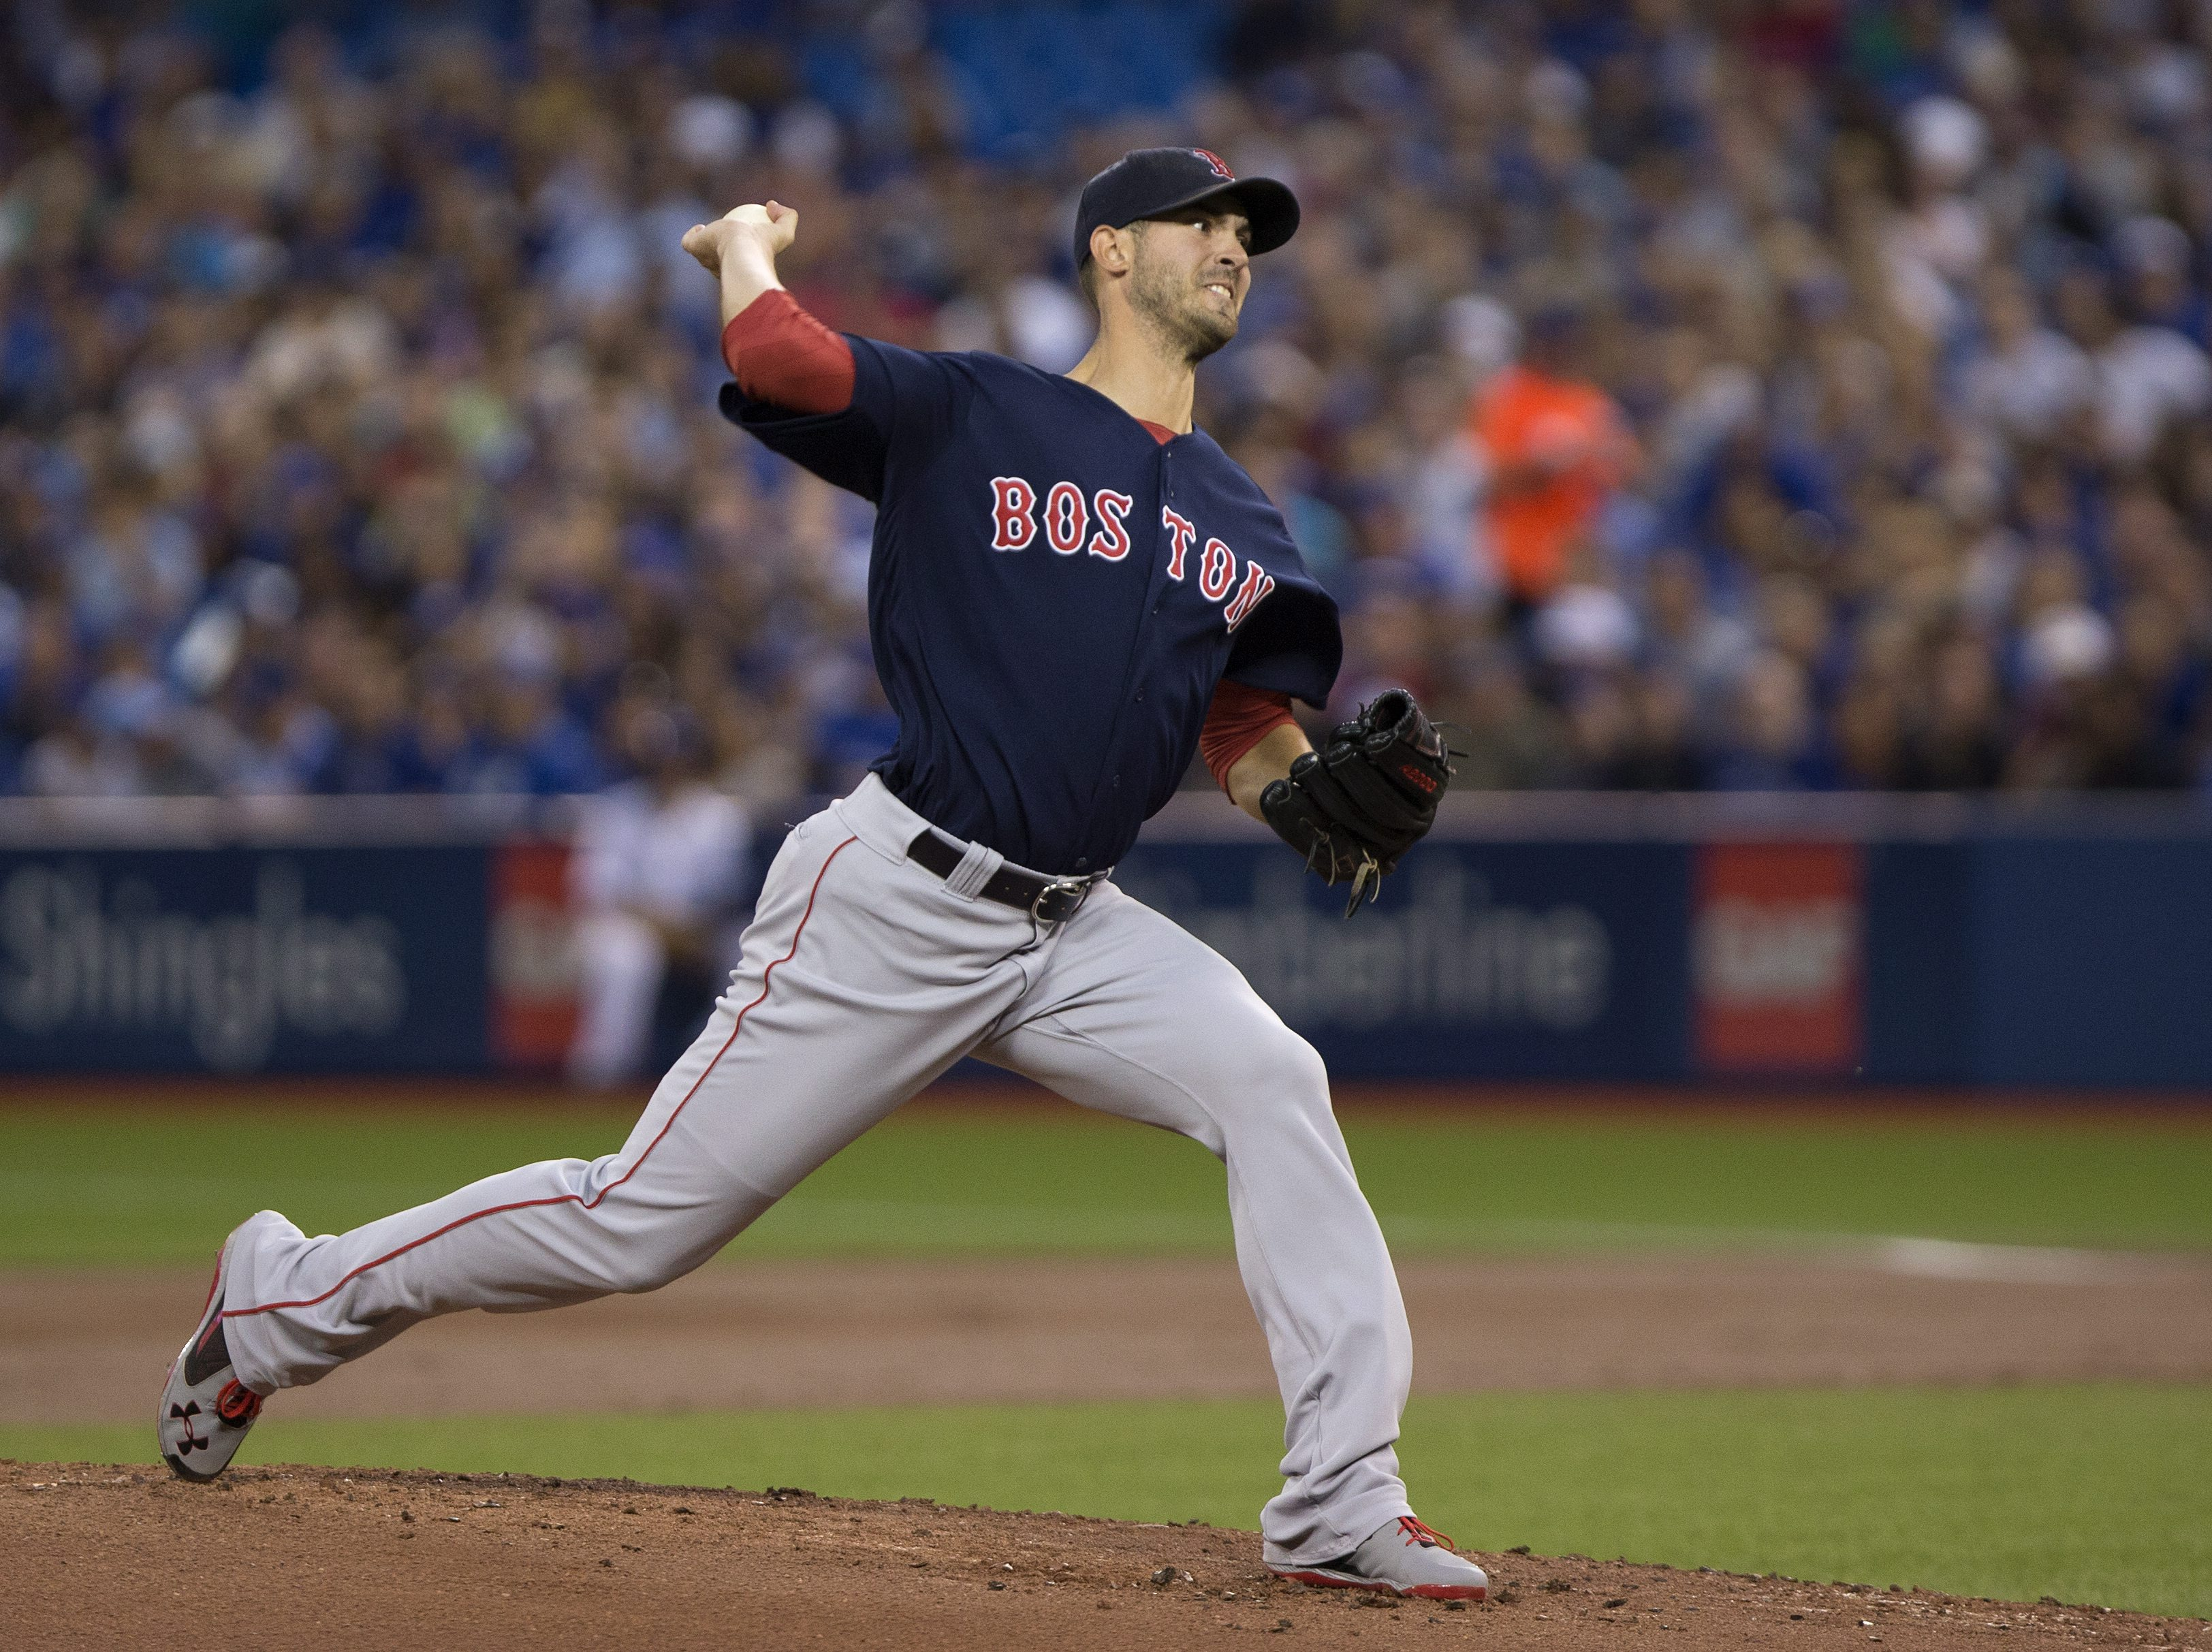 Boston Red Sox starting pitcher Rick Porcello delivers during first-inning baseball game action against the Toronto Blue Jays in Toronto, Friday, Sept. 9, 2016. (Peter Power/The Canadian Press via AP)